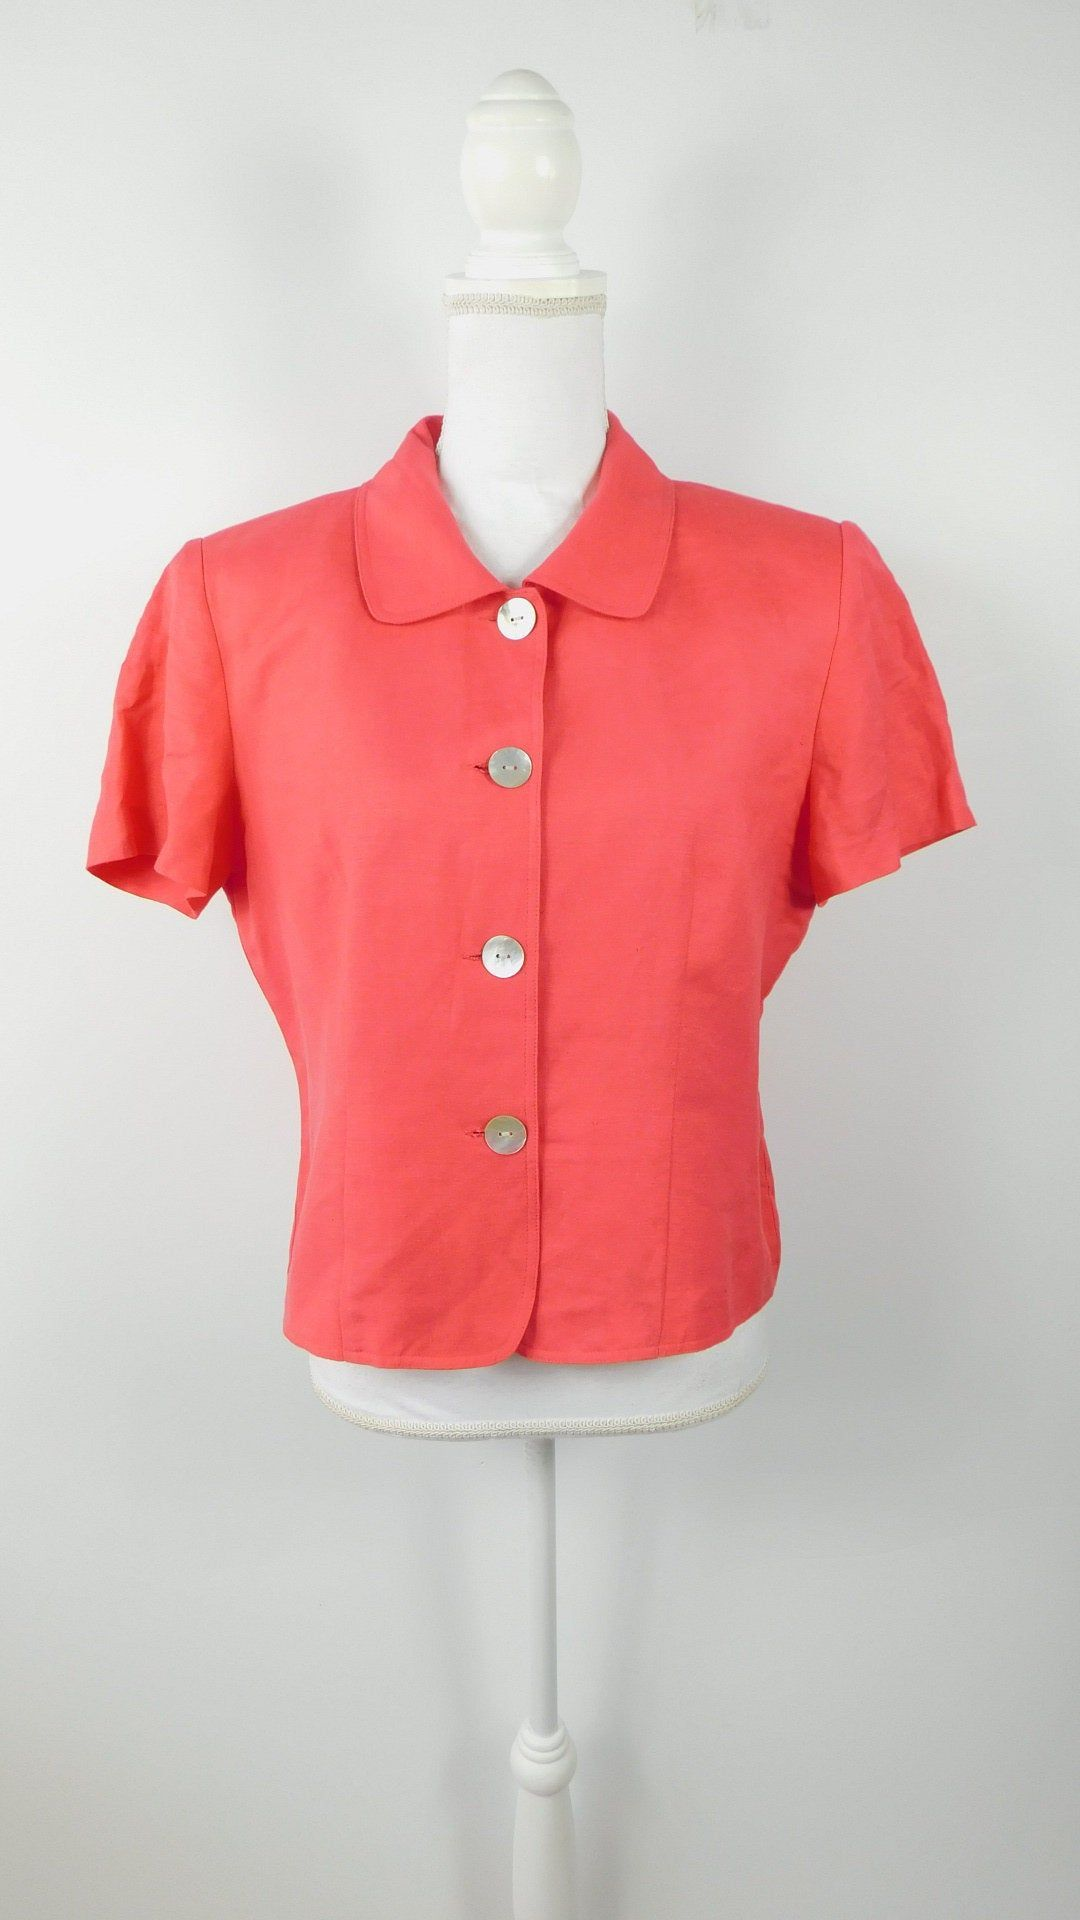 Vintage 80s Jessica Howard Coral Pink Linen Spring Minimal Button Up Collared Short Sleeve